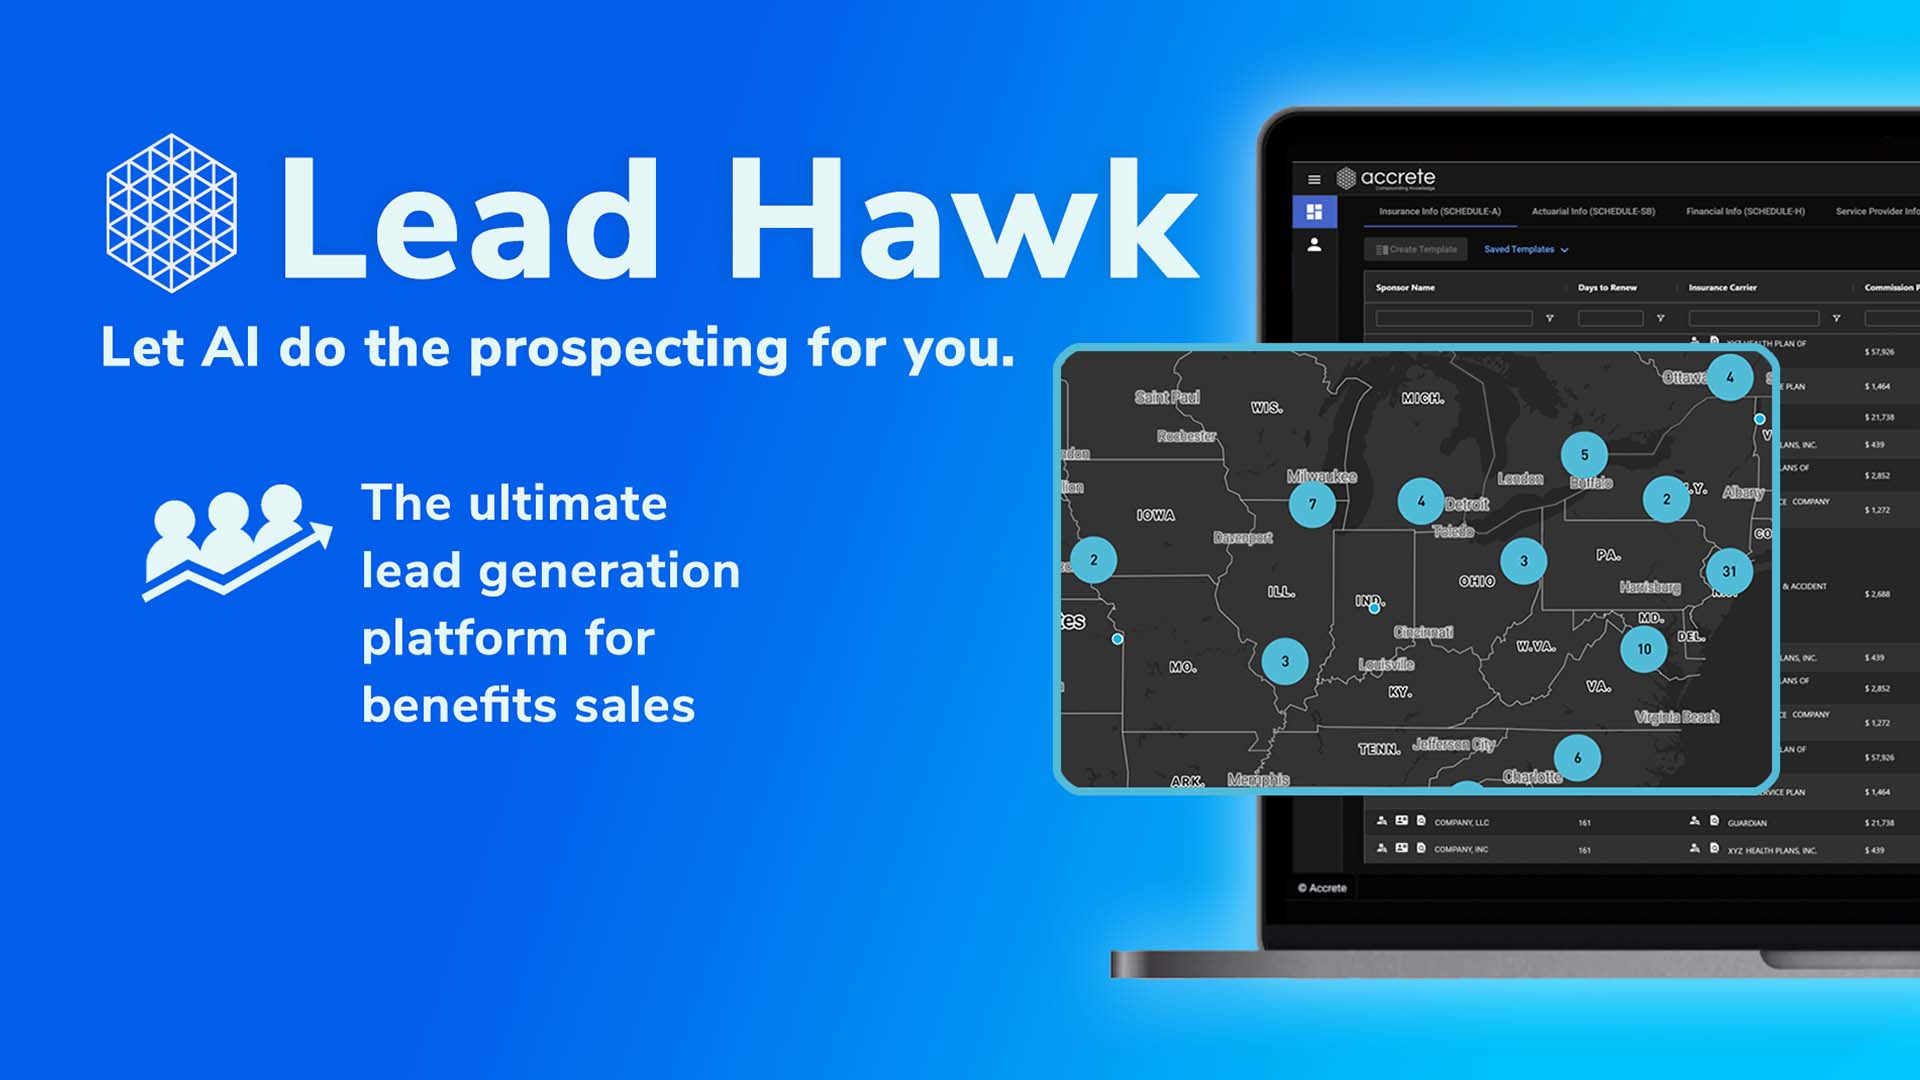 A video thumbnail for Accrete's Lead Hawk. Let AI do the prospecting for you. The ultimate lead generation platform for benefits sales